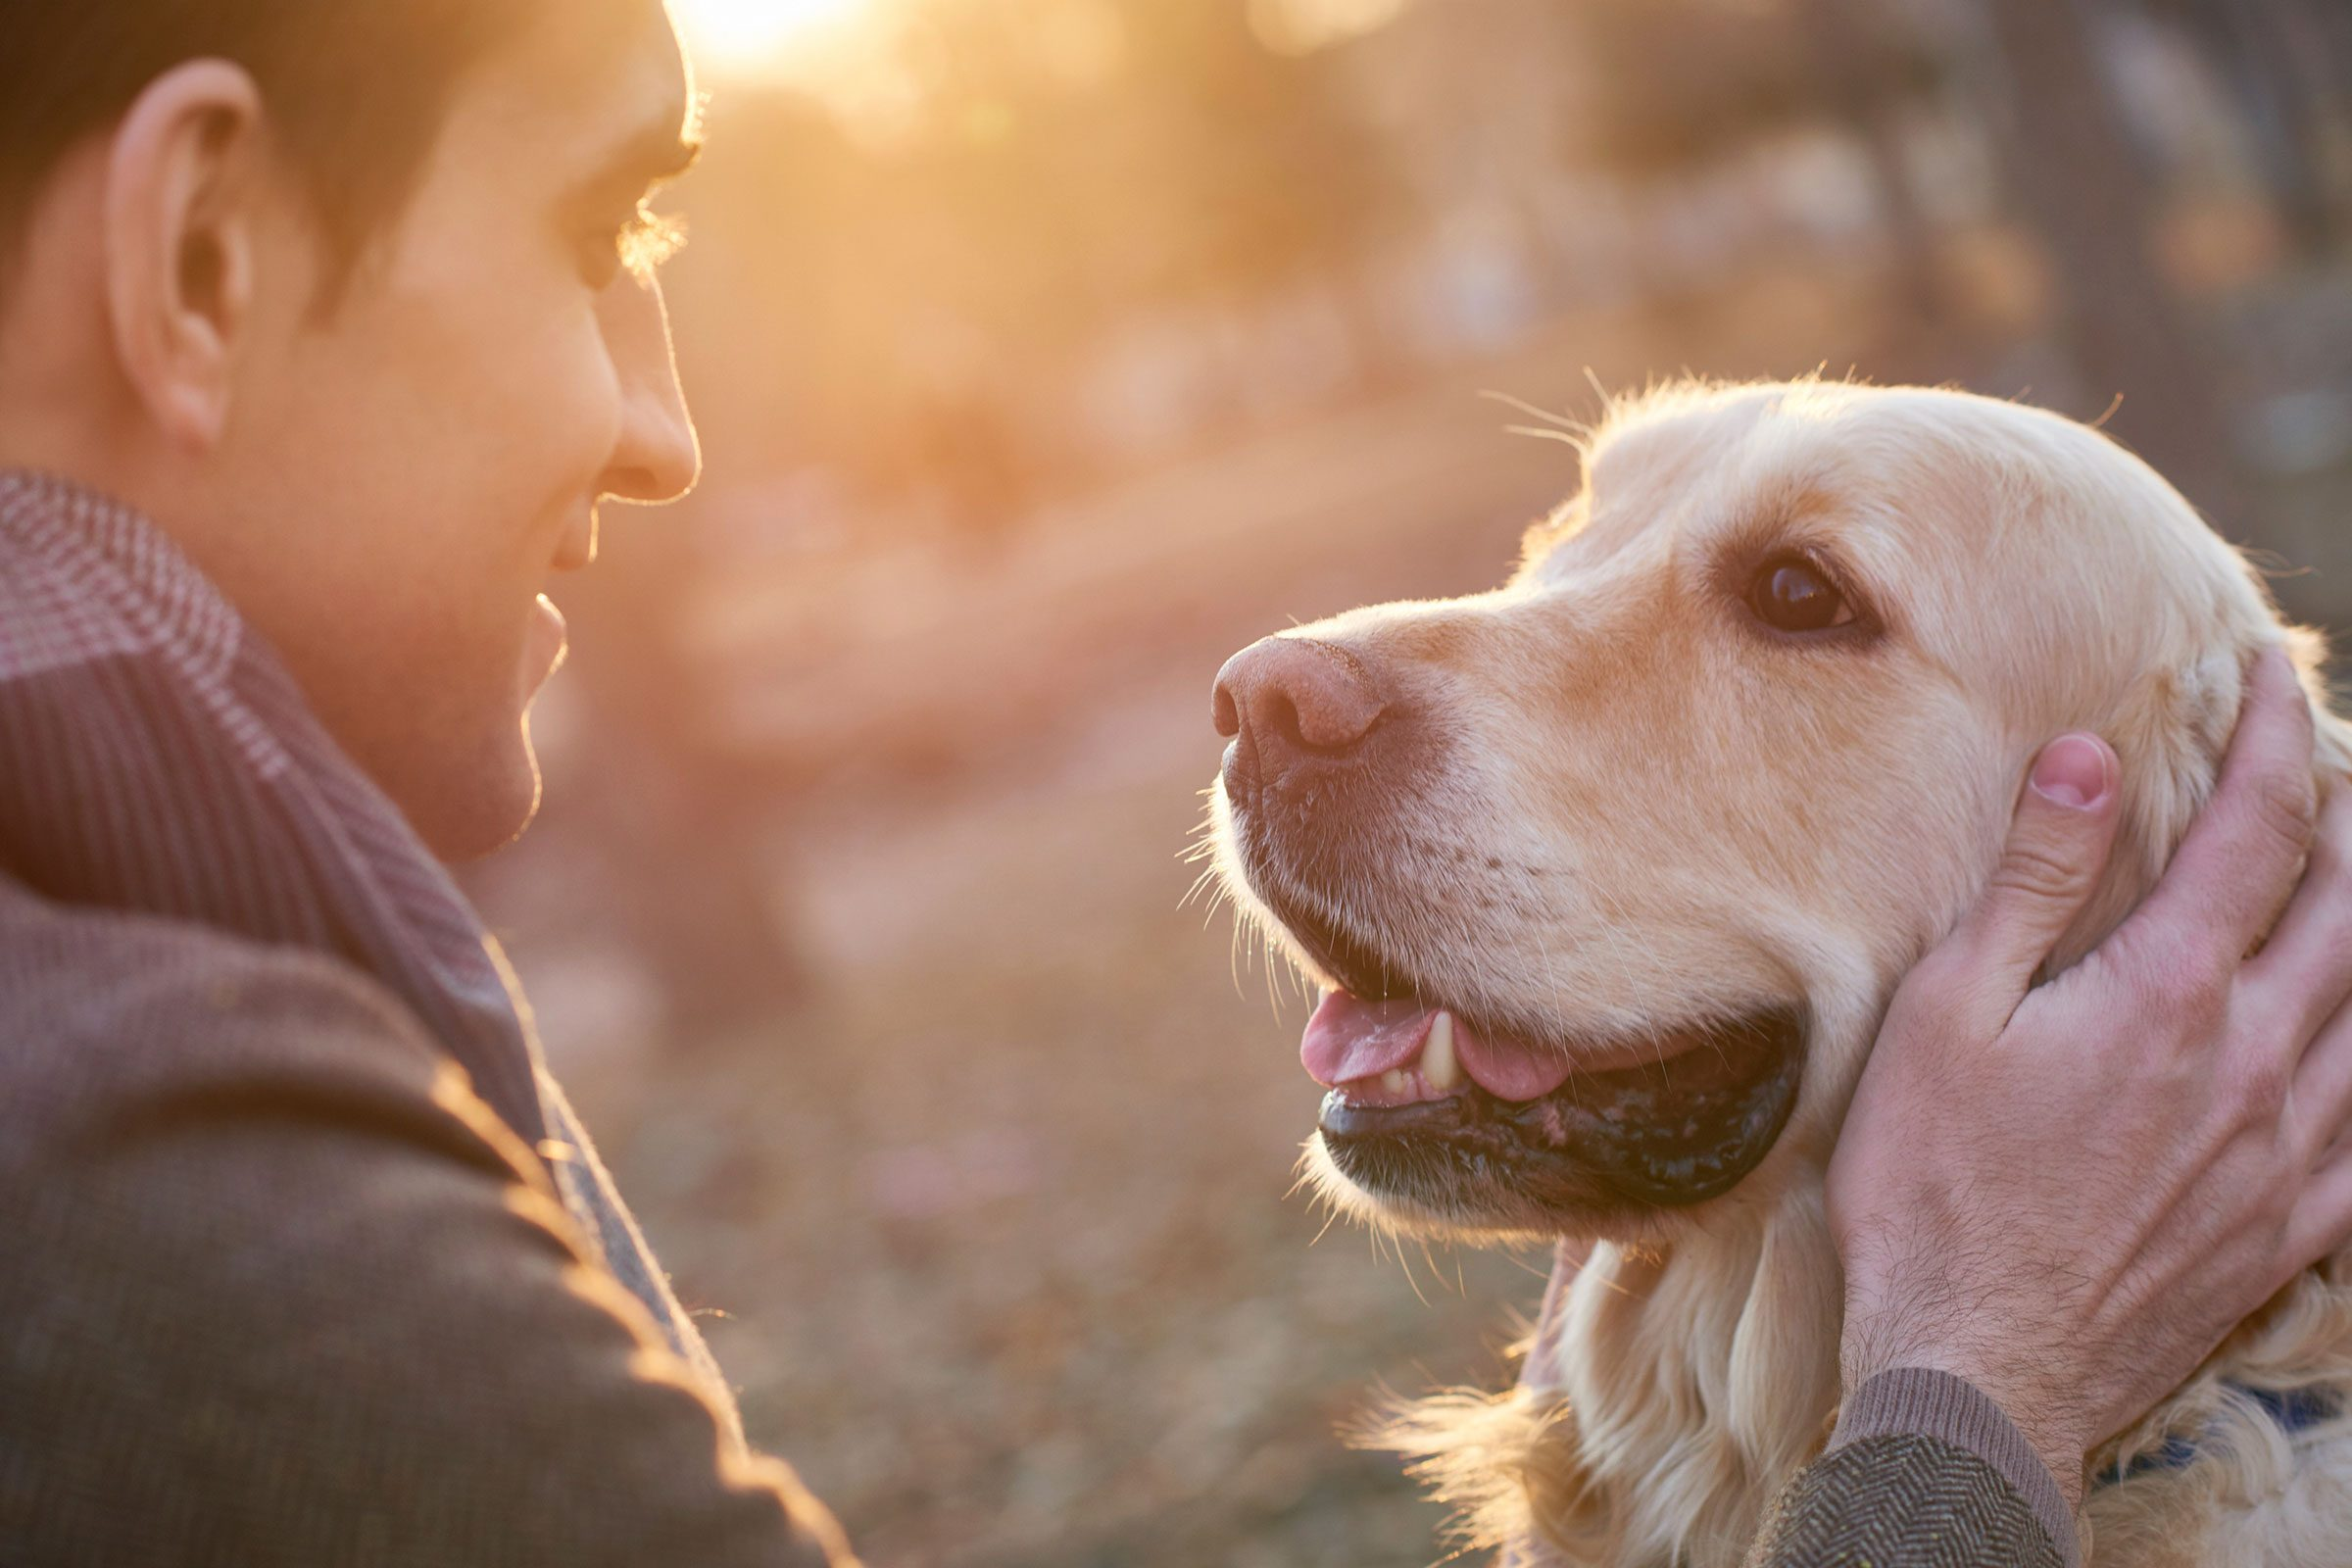 Benefits of Having a Pet, According to Science